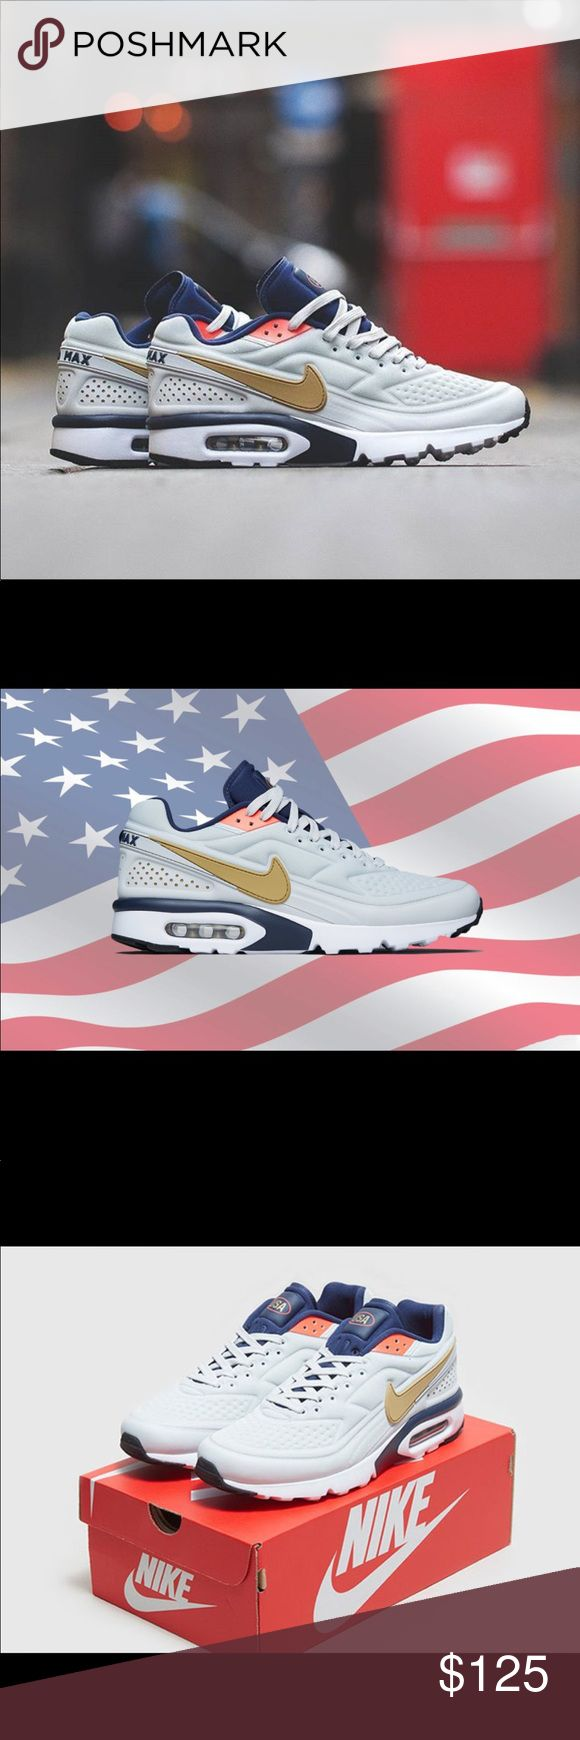 New wo/ box Nike USA Rio Olympic air max size 13 Nike Sportswear will be releasing another USA-inspired silhouette with the debut of the Nike Air Max BW Ultra SE Olympic colorway.  This Nike Air Max BW is inspired by the 2016 Summer Olympics in Rio that comes dressed in a Pure Platinum, Metallic Gold and Midnight Navy color scheme. The shoe features a seamless upper in Pure Platinum with Gold, Navy and Red contrasting accents, completed with a USA logo on the tongue. Nike Shoes Athletic…